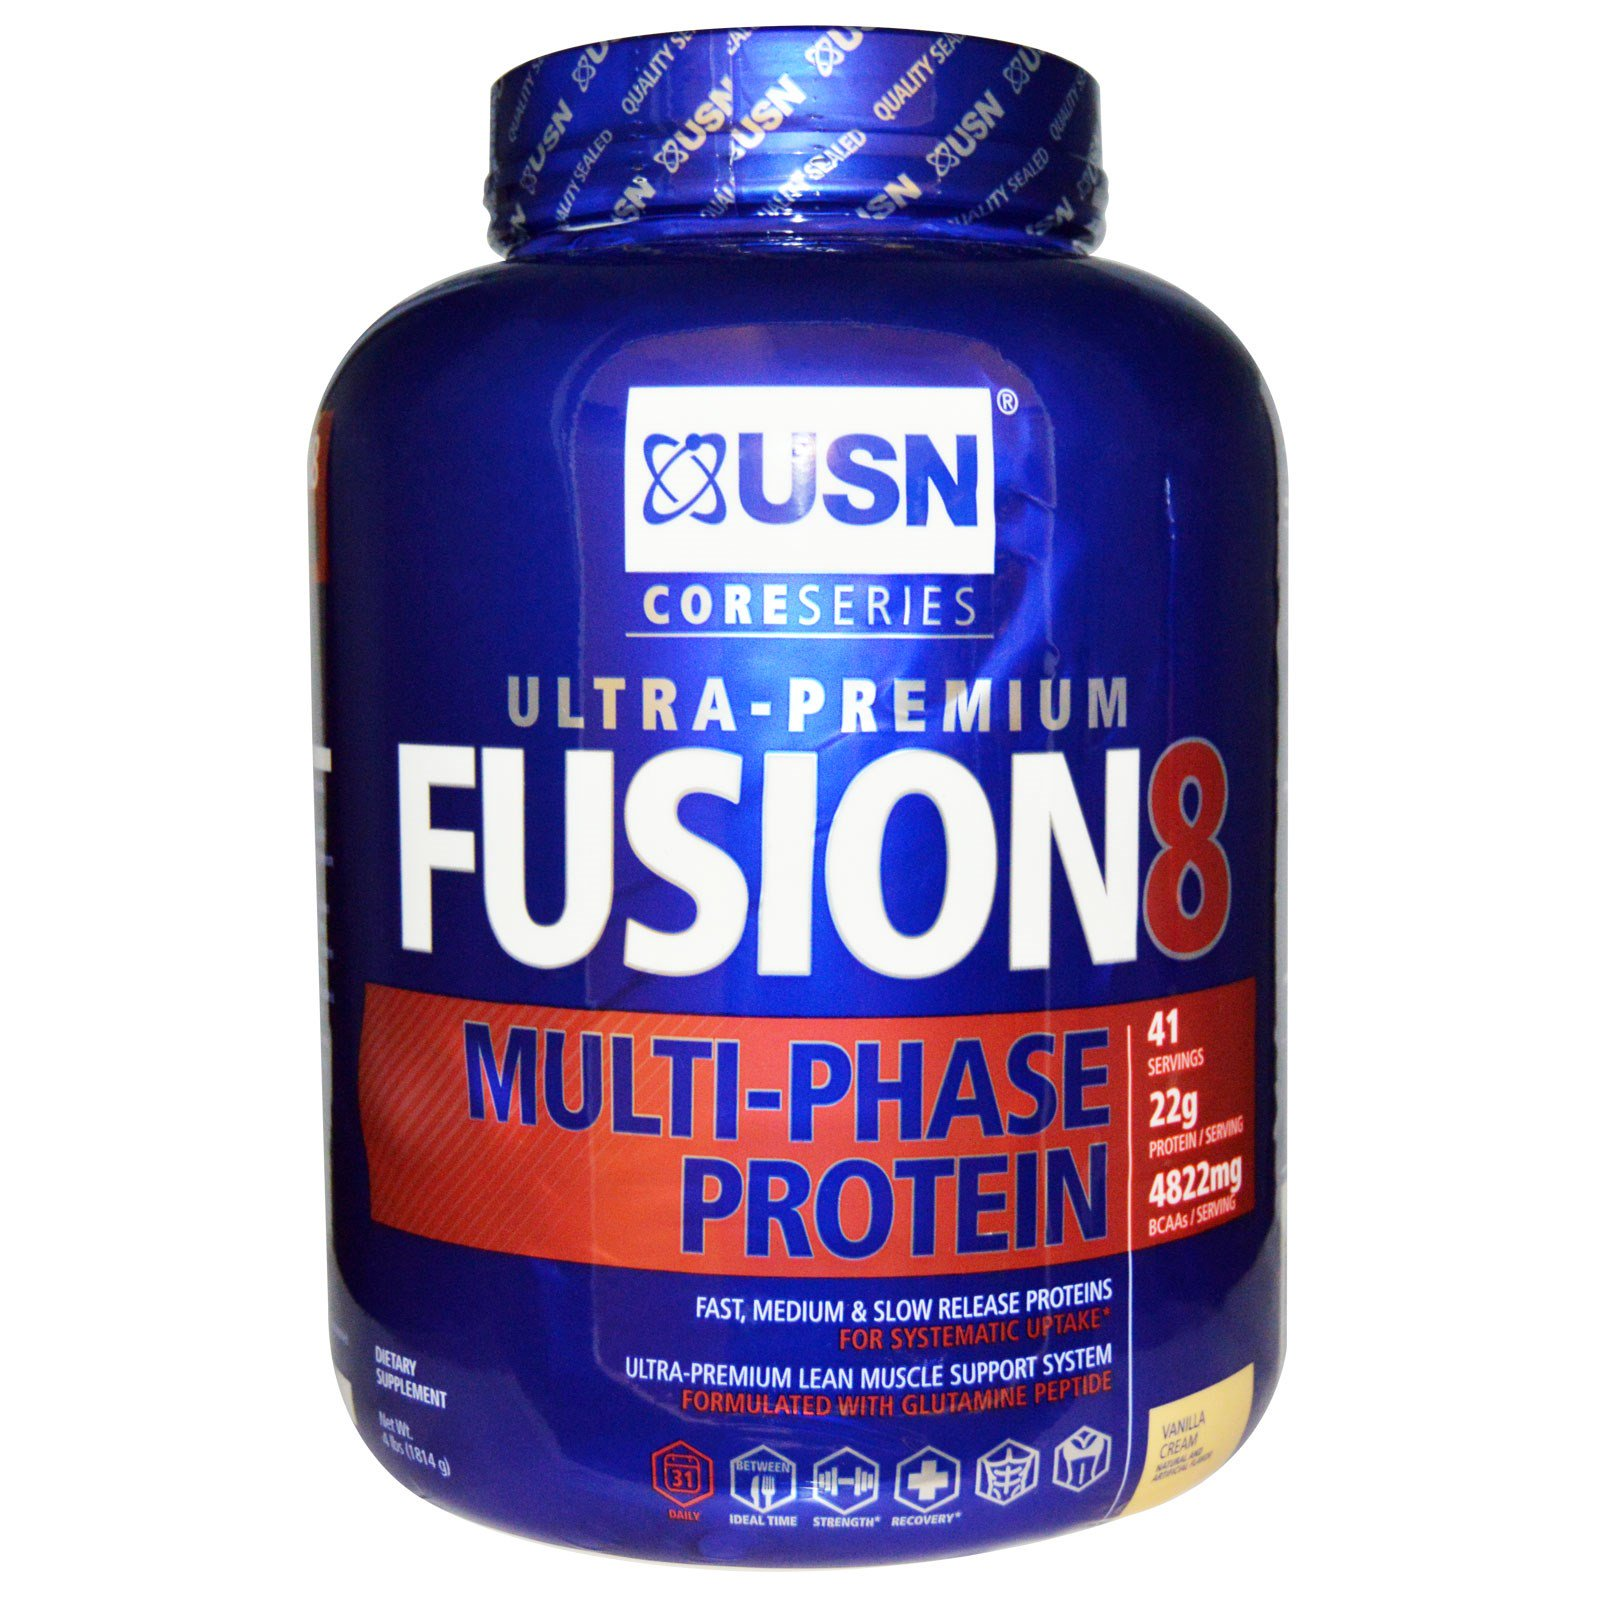 Usn Fusion 8 Multi Phase Protein Vanilla Cream 4 Lbs 1814 G Discontinued Item